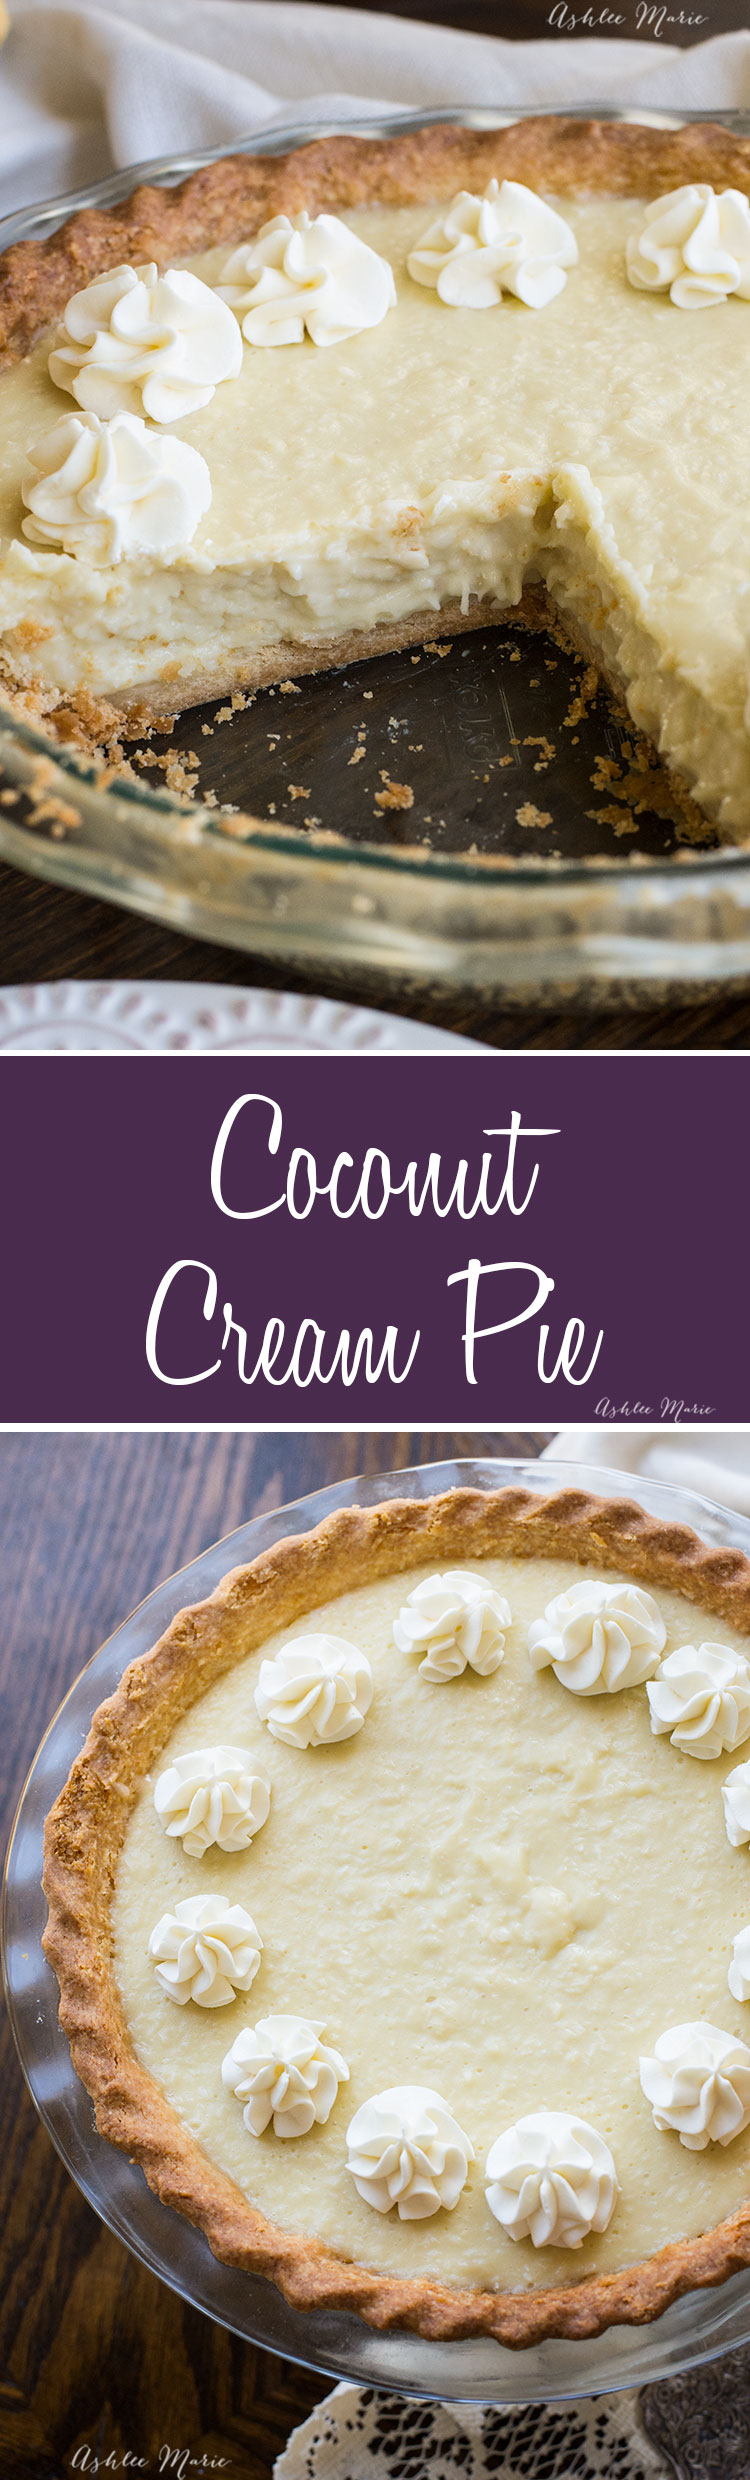 this coconut cream pie is the best you will ever try! not only an amazing flavor but GREAT texture and a hit with all coconut lovers